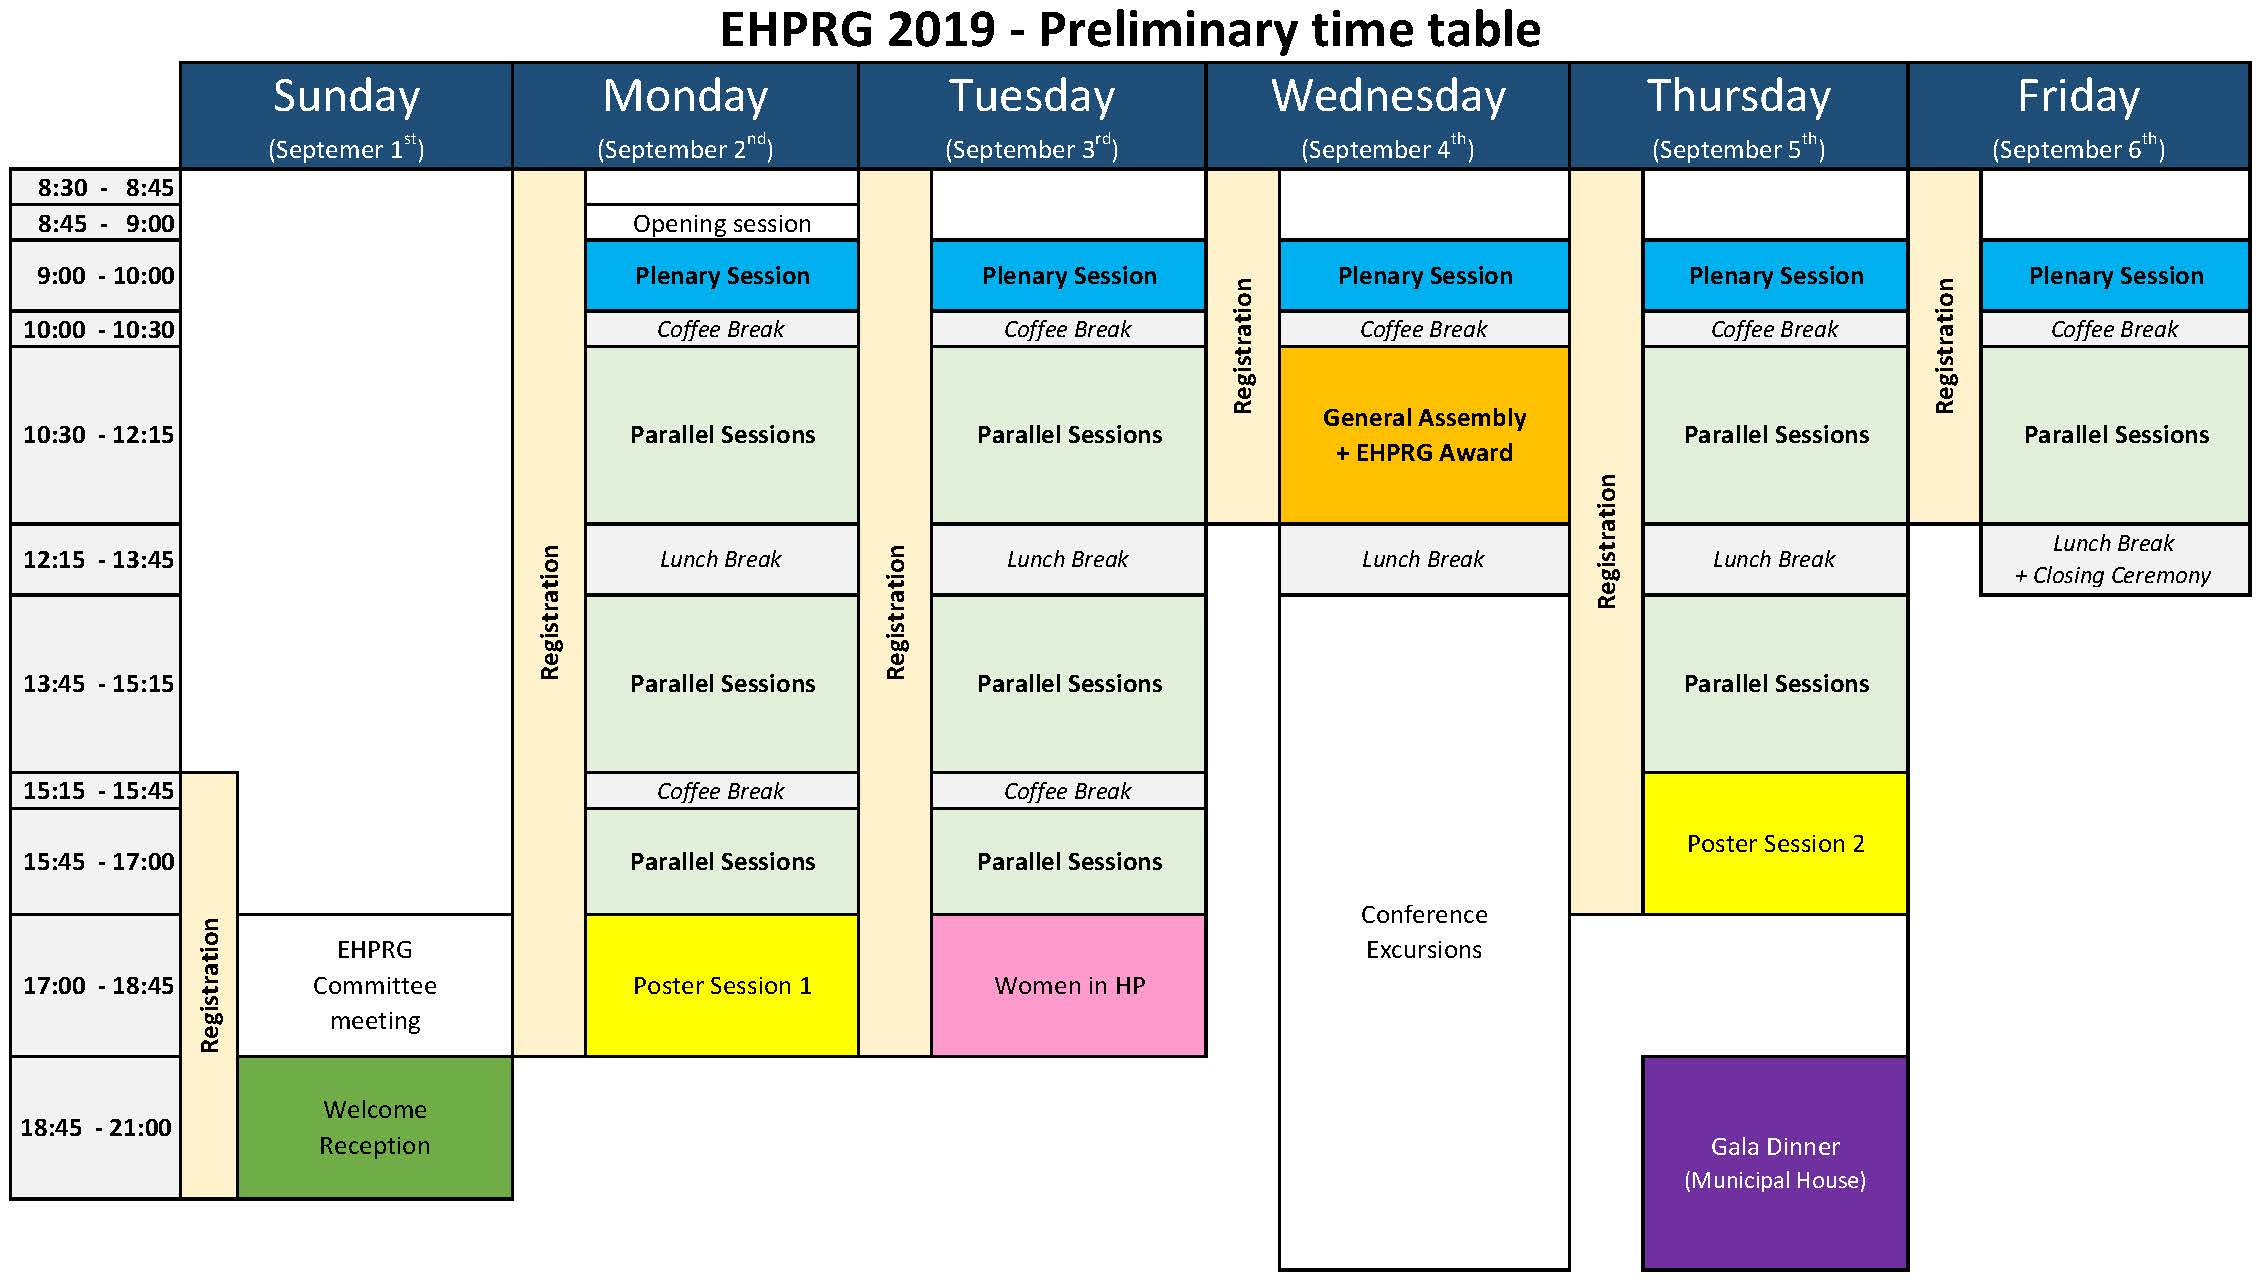 EHPRG2019 Preliminary timetable